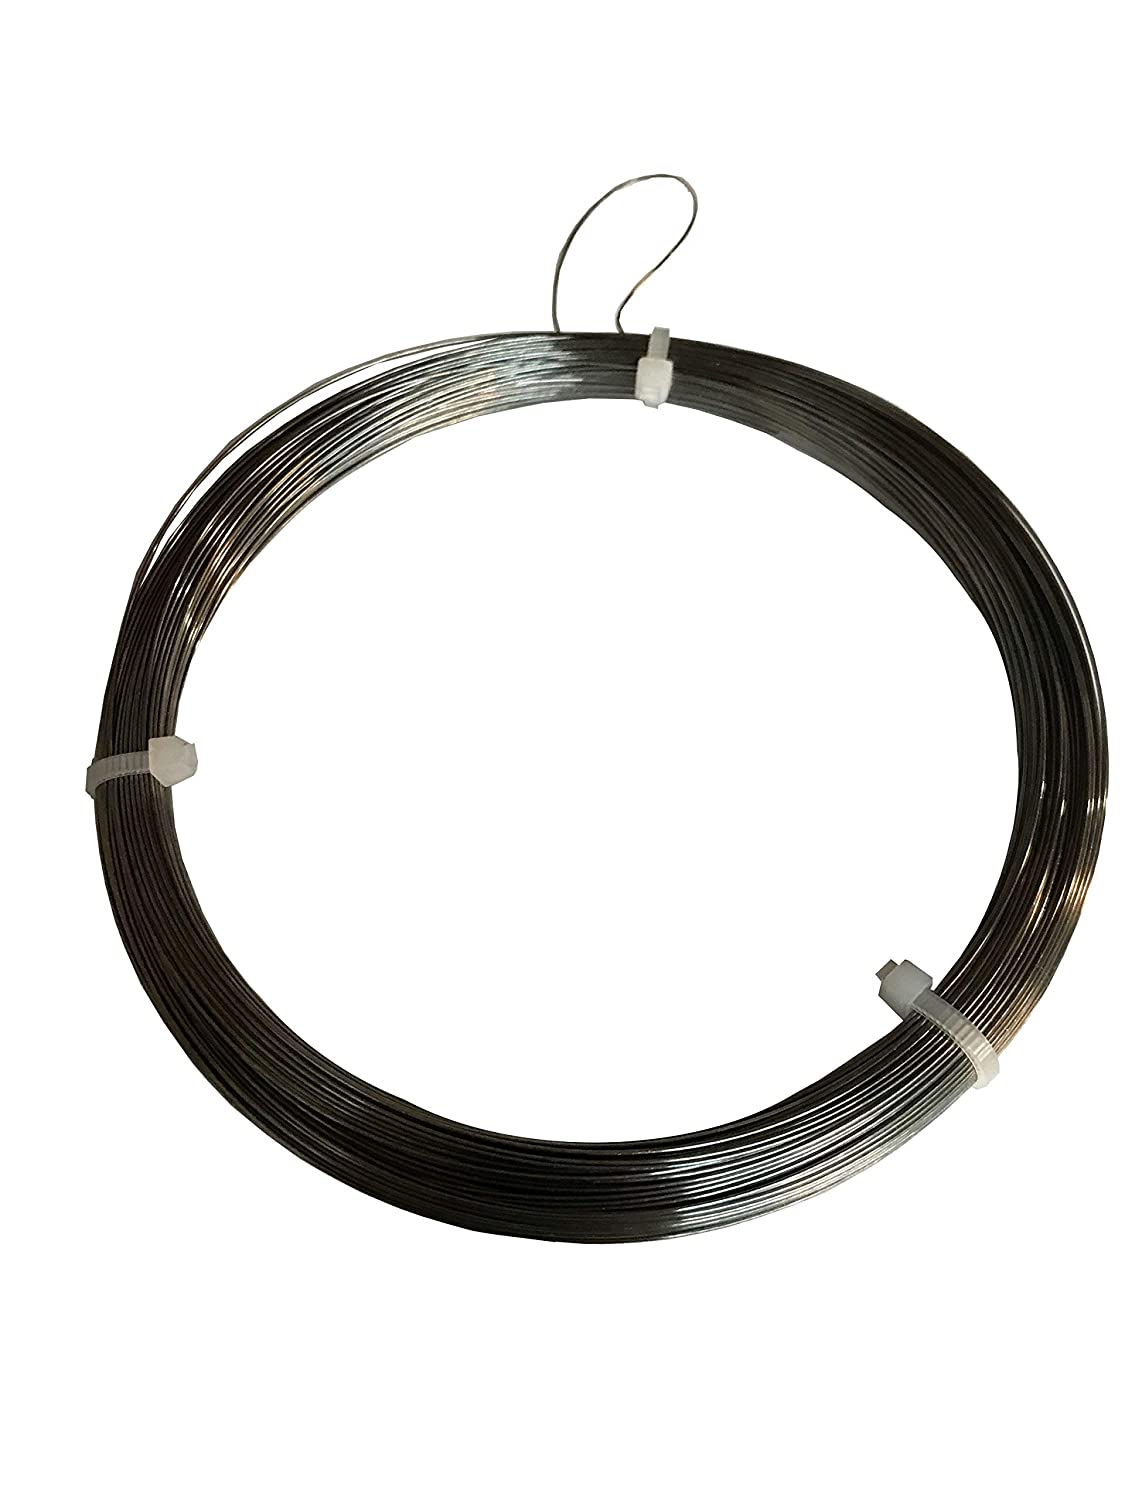 """0.020"""" Stainless Steel Wire - 1/4 Lbs. 235 Feet - Made in USA 71TDU3CX3iL"""